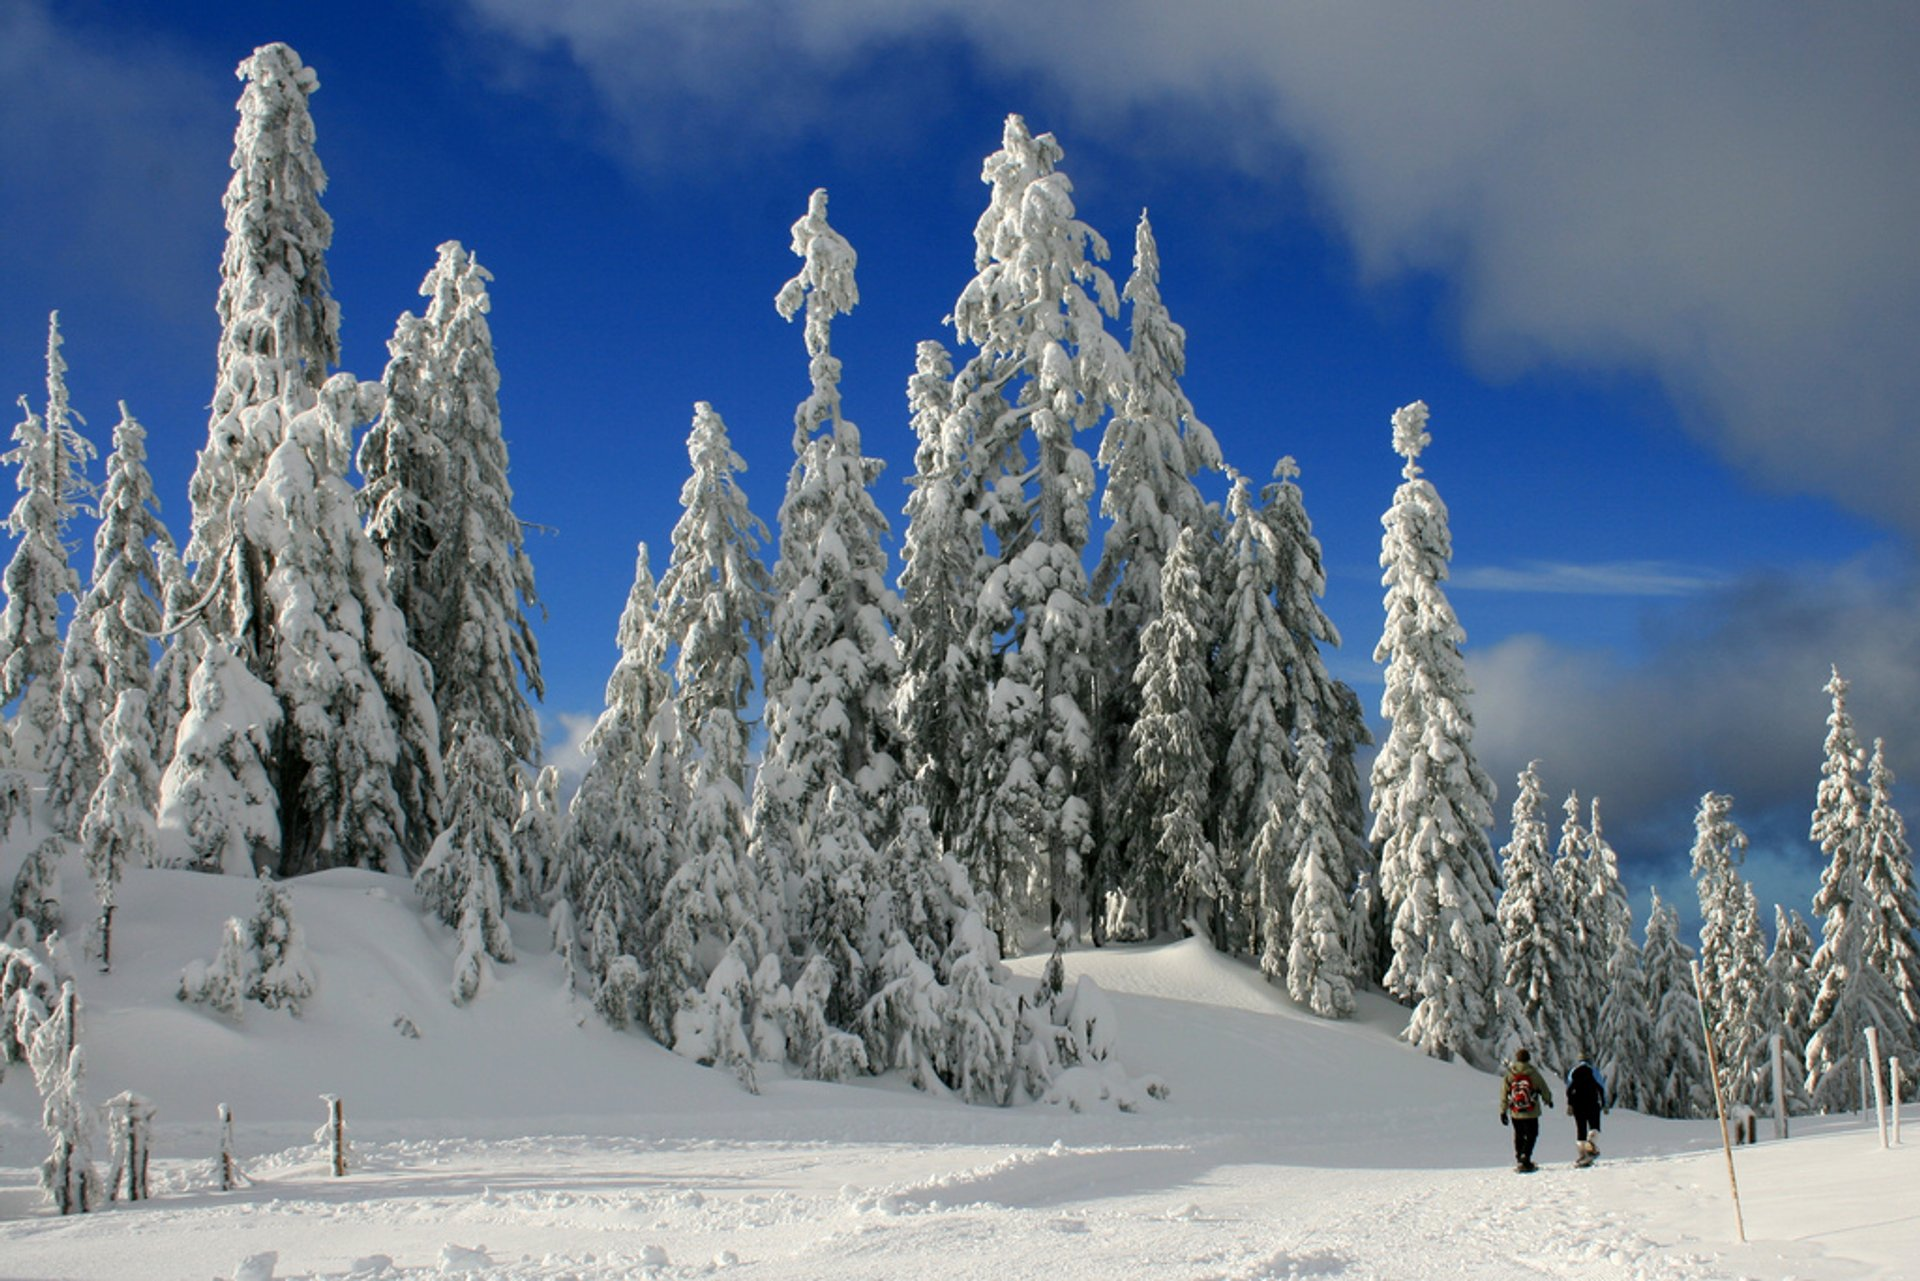 There was thick layer of snow on a snowshoeing trail on Grouse Mountain. 2020